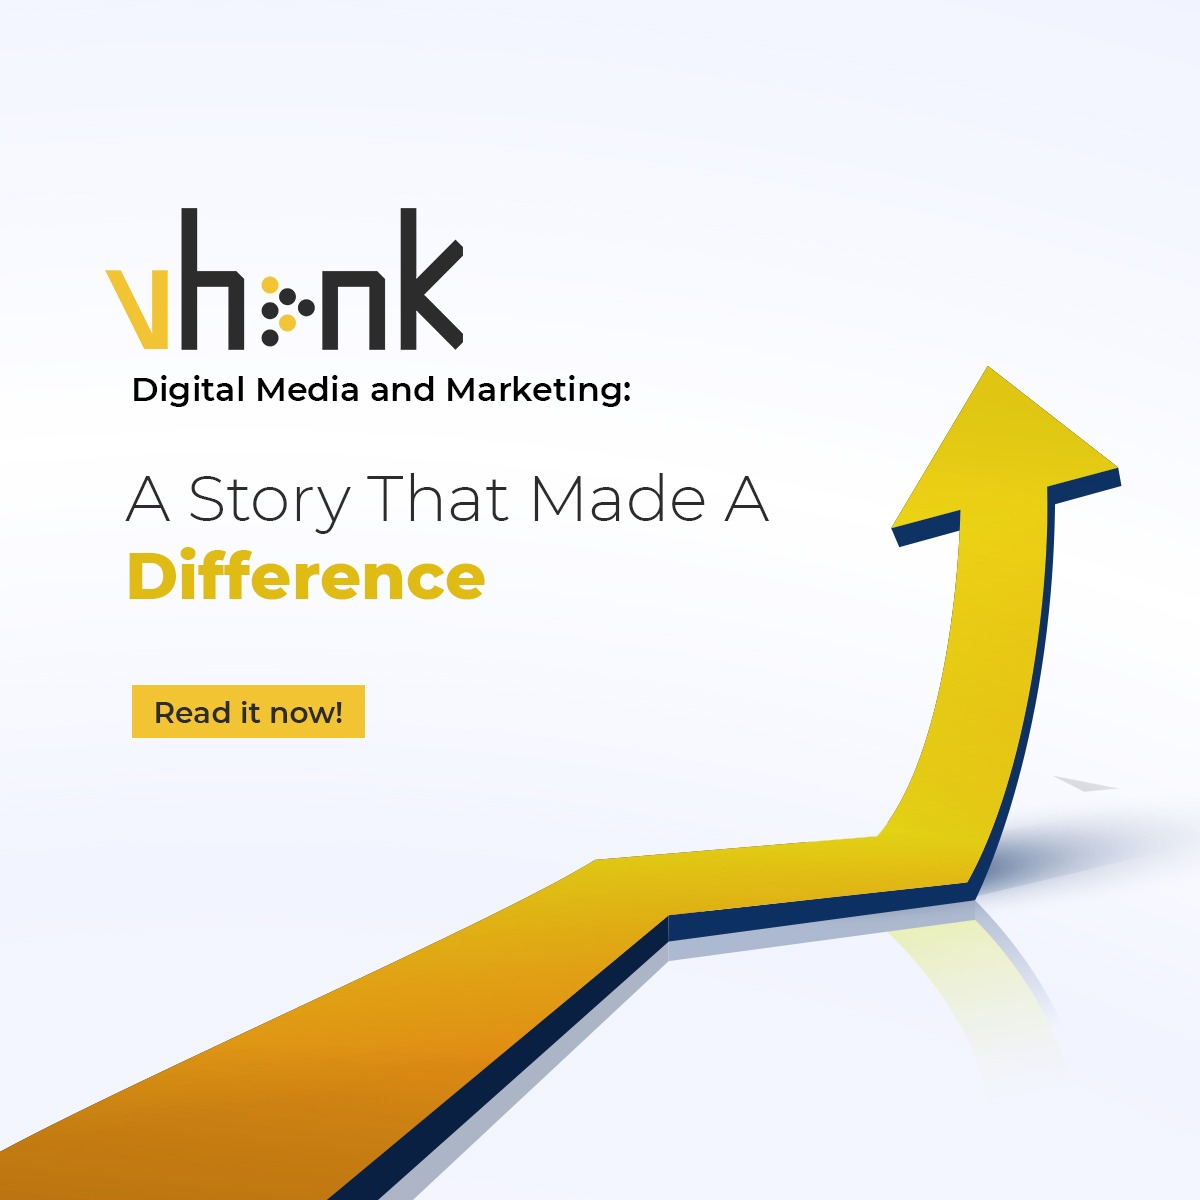 VHonk Digital Media and Marketing: A Story That Made A Difference